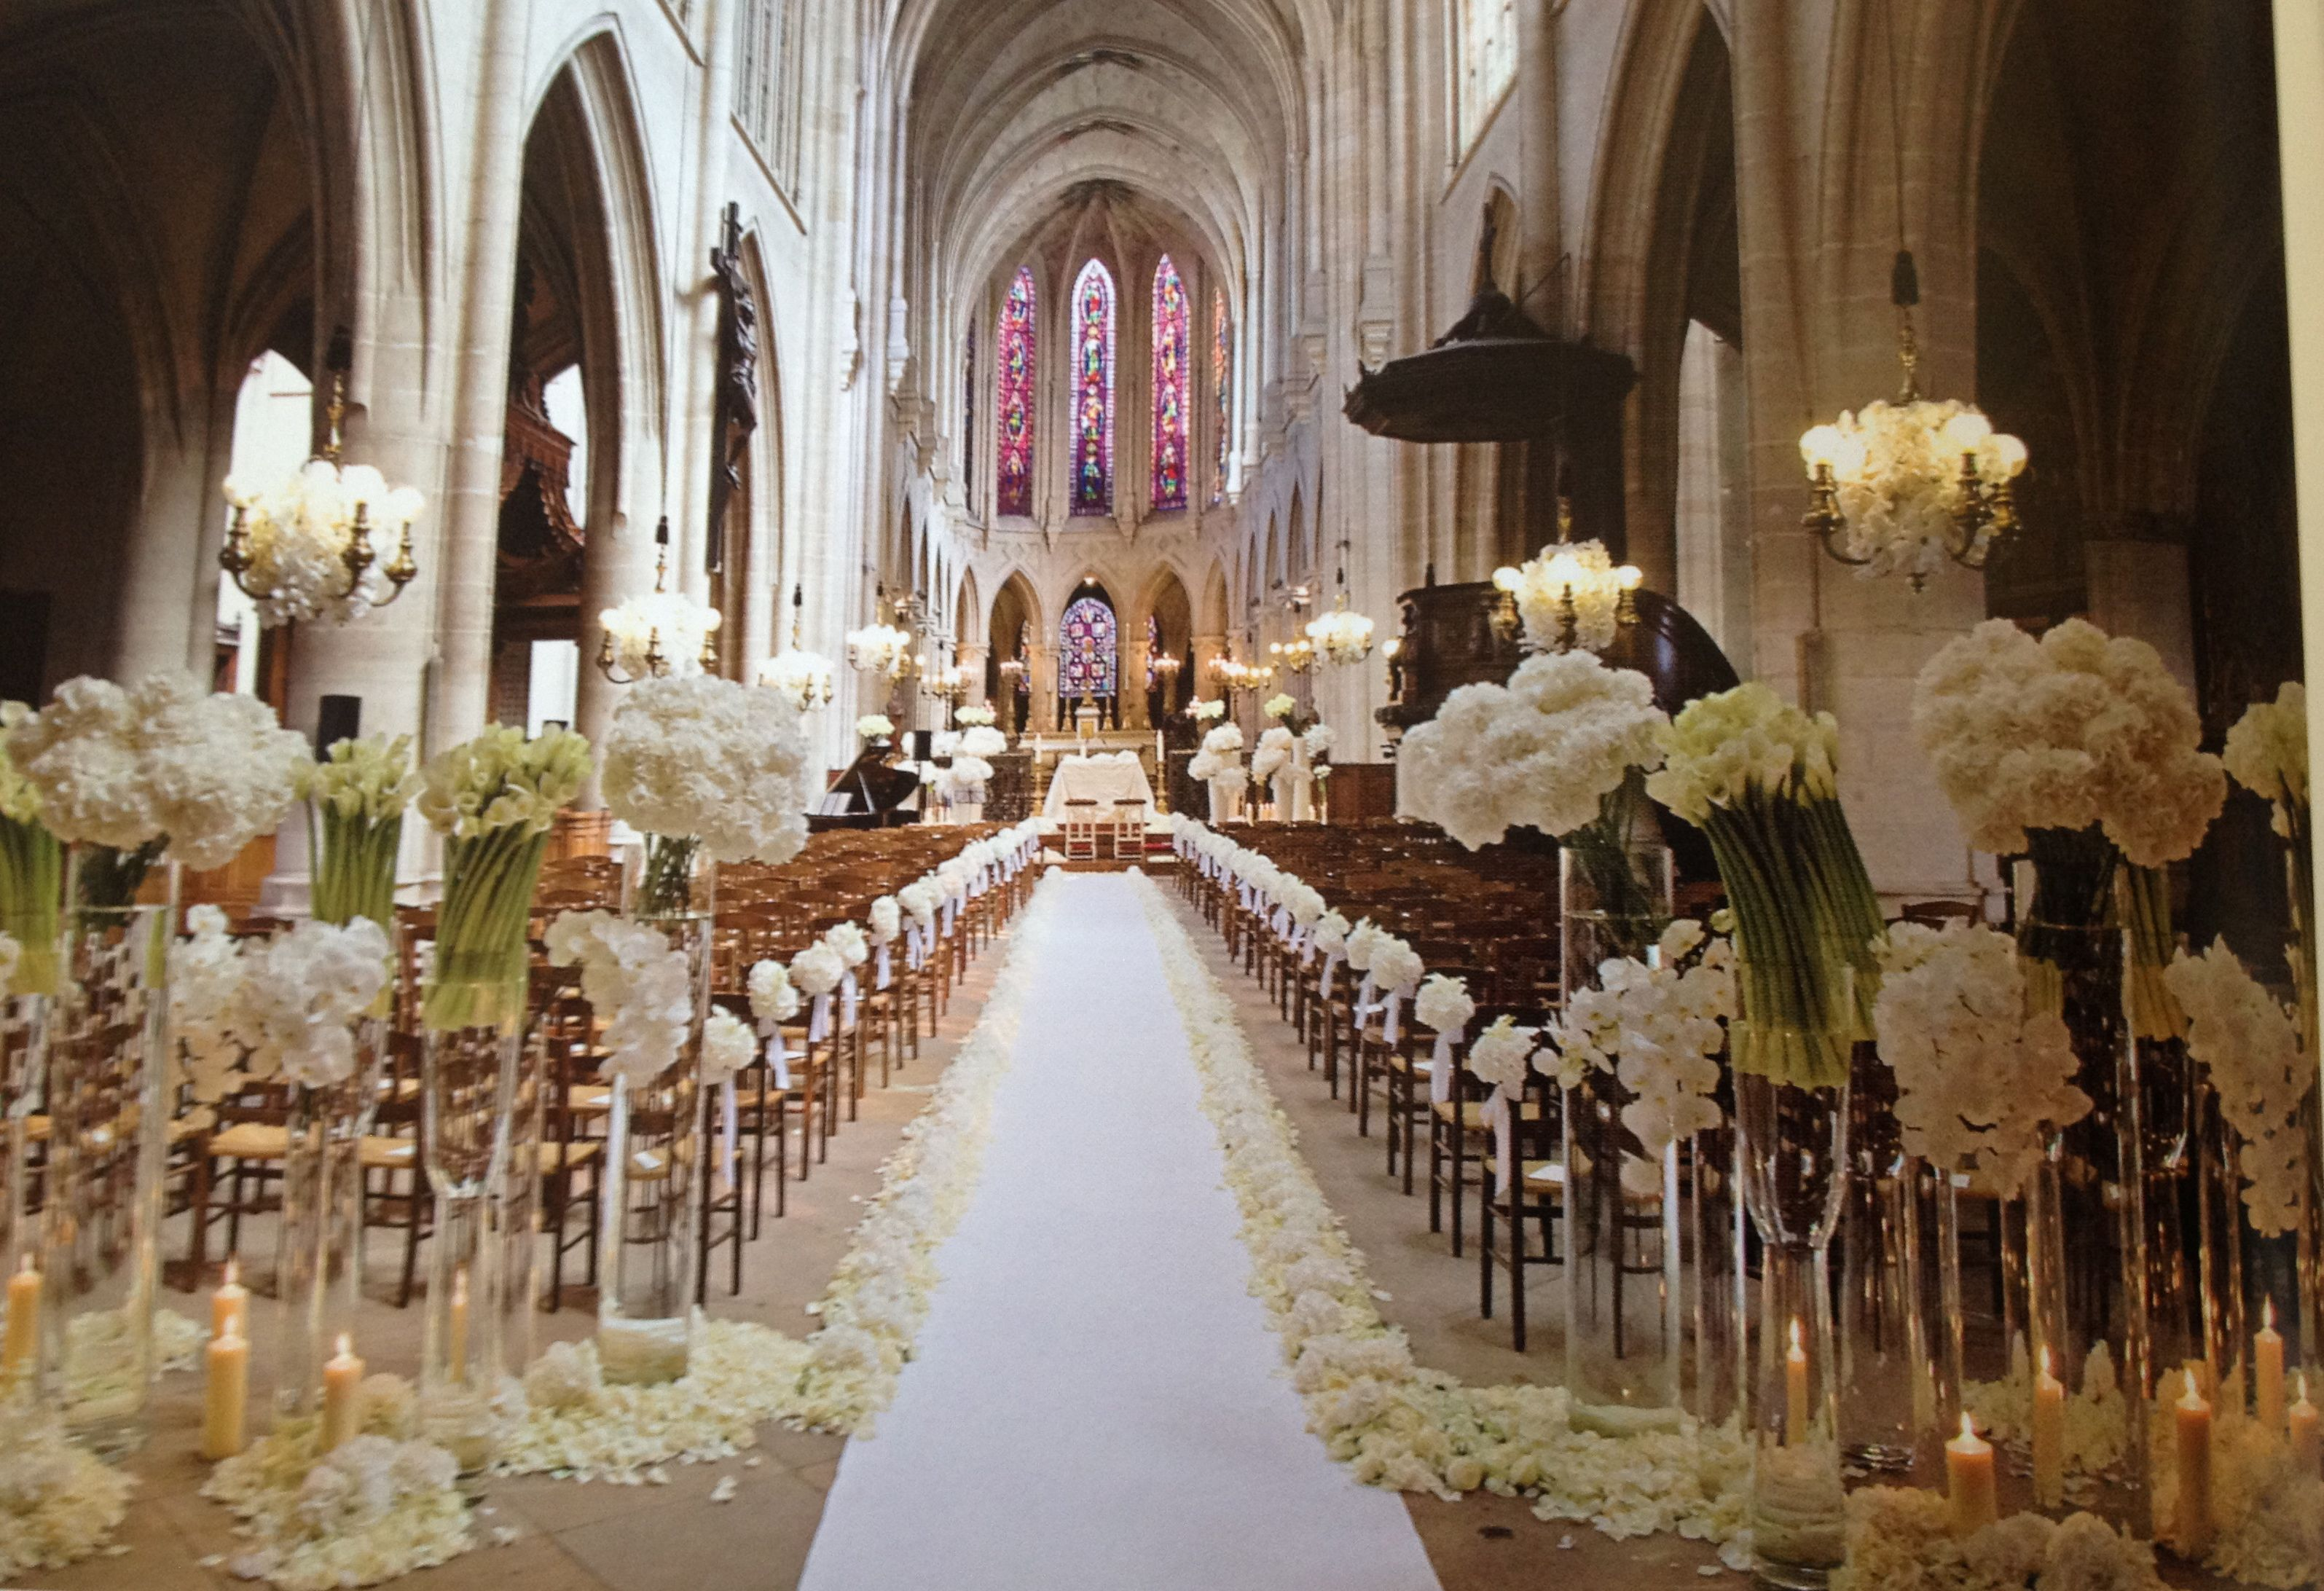 Pictures of church wedding ceremony decorations Wedding Ceremony Order of Service - 21 step guide